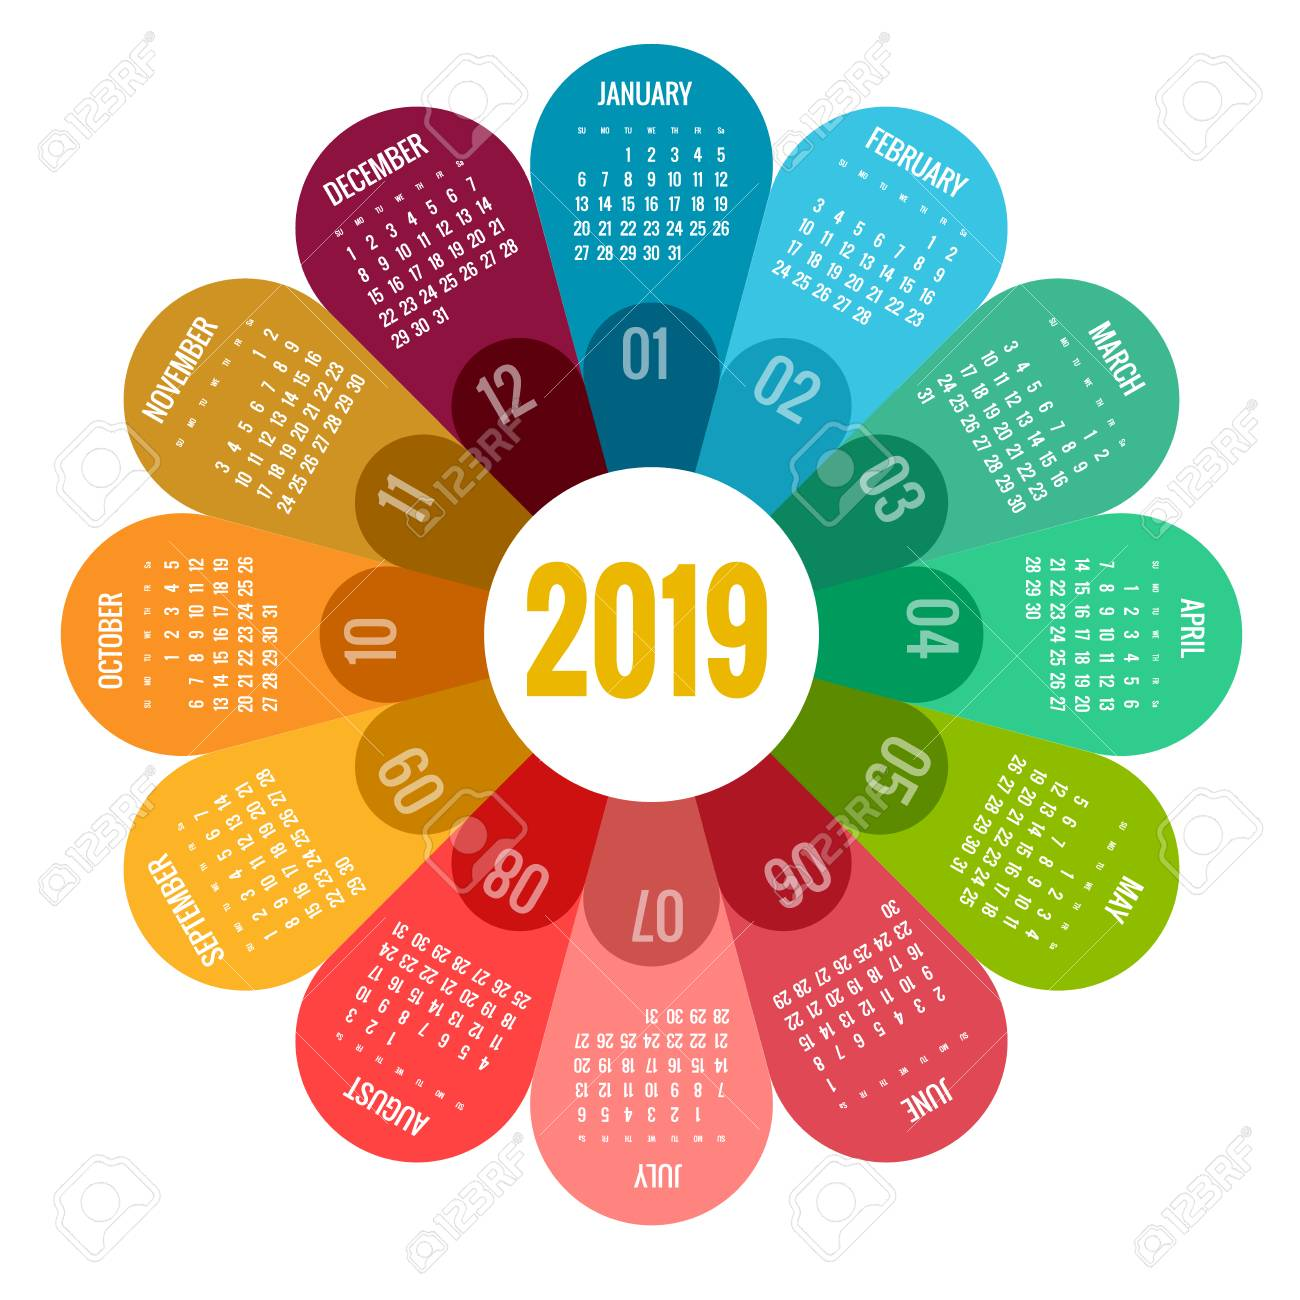 Template For Calendar 2019 Colorful Round Calendar 2019 Design, Print Template, Your Logo